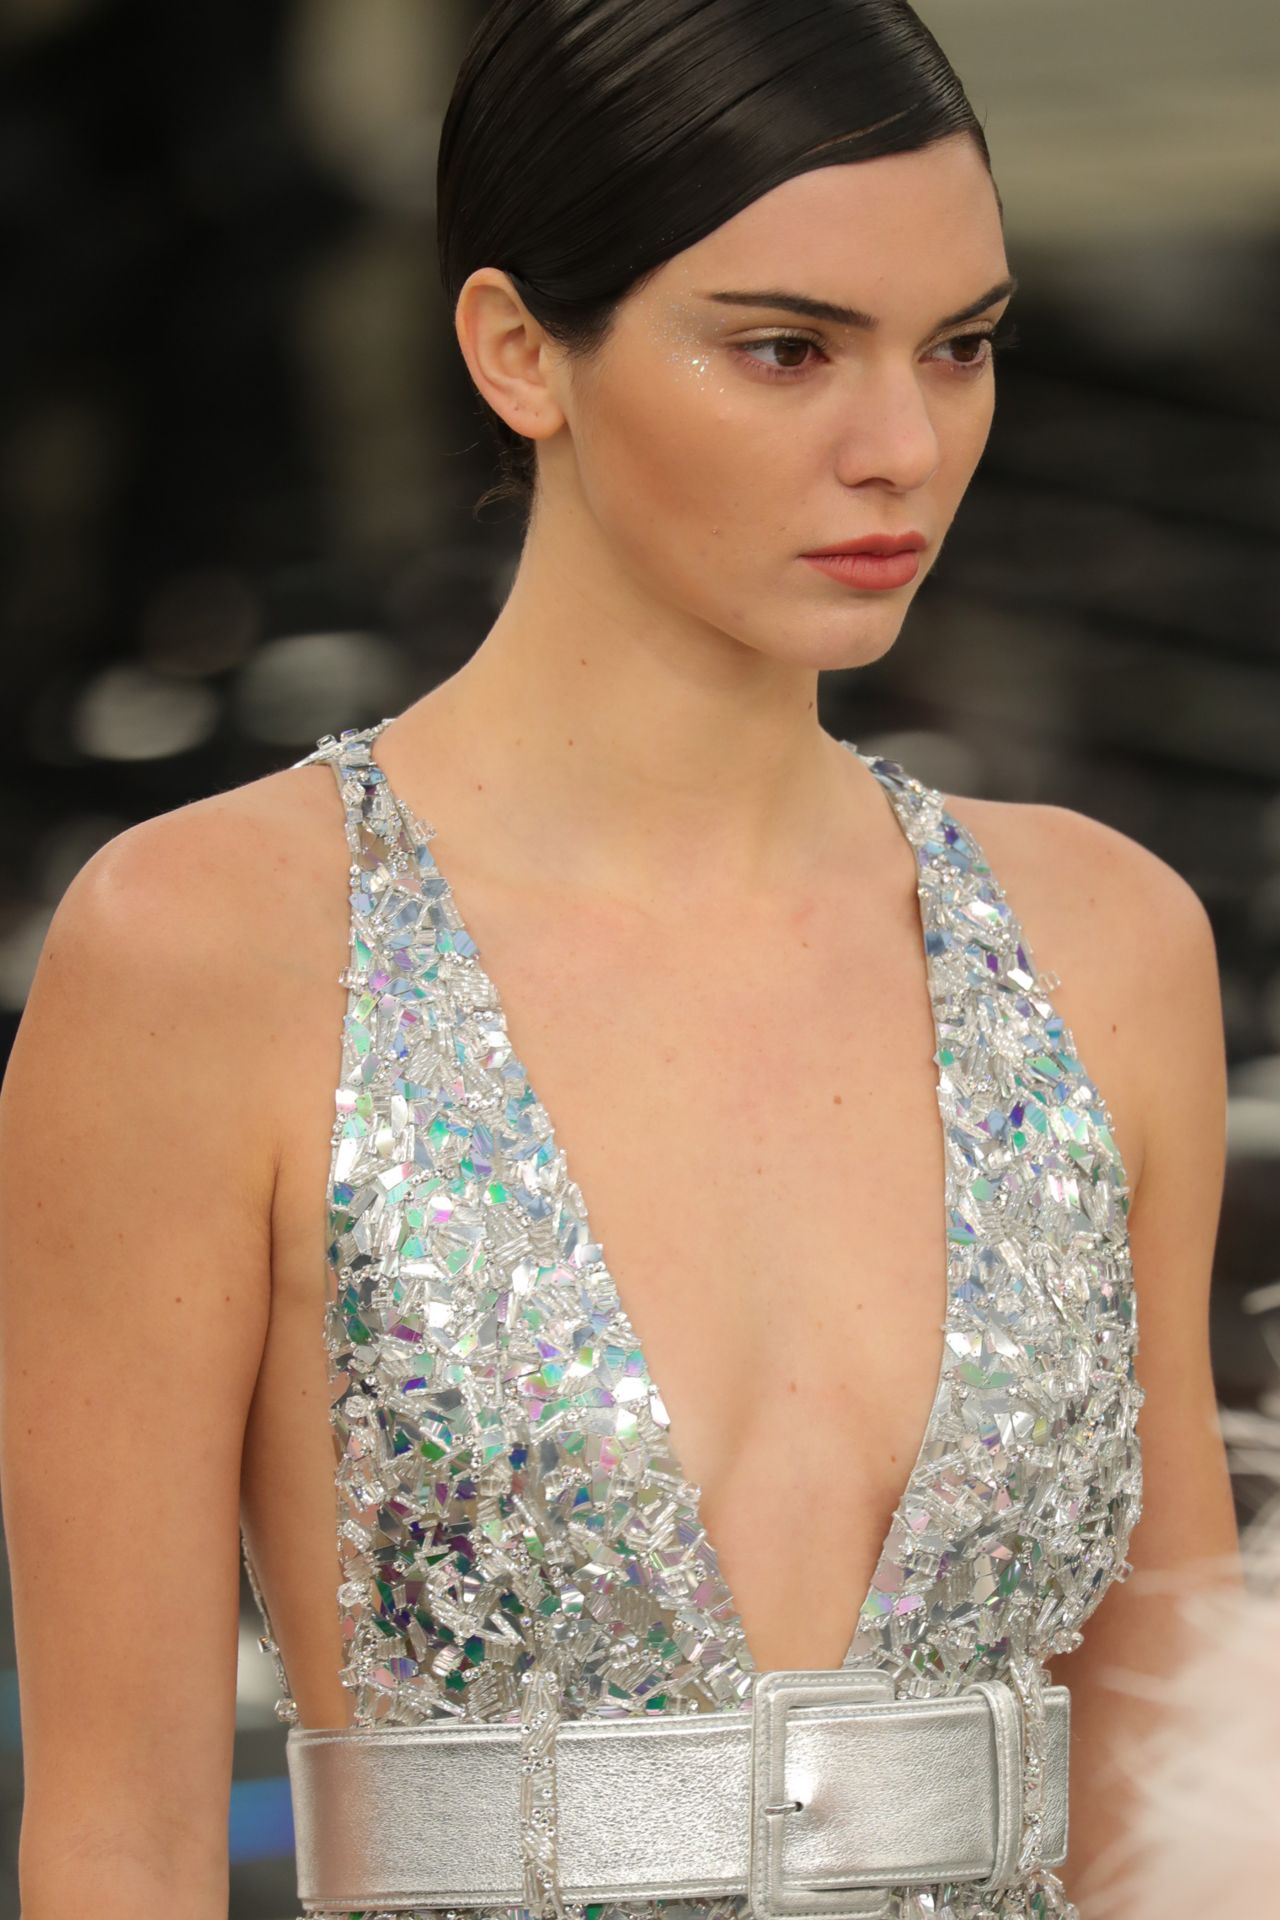 kendall-jenner-chanel-show-spring-summer-2017-haute-couture-fashion-week-in-paris-1-24-2017-3